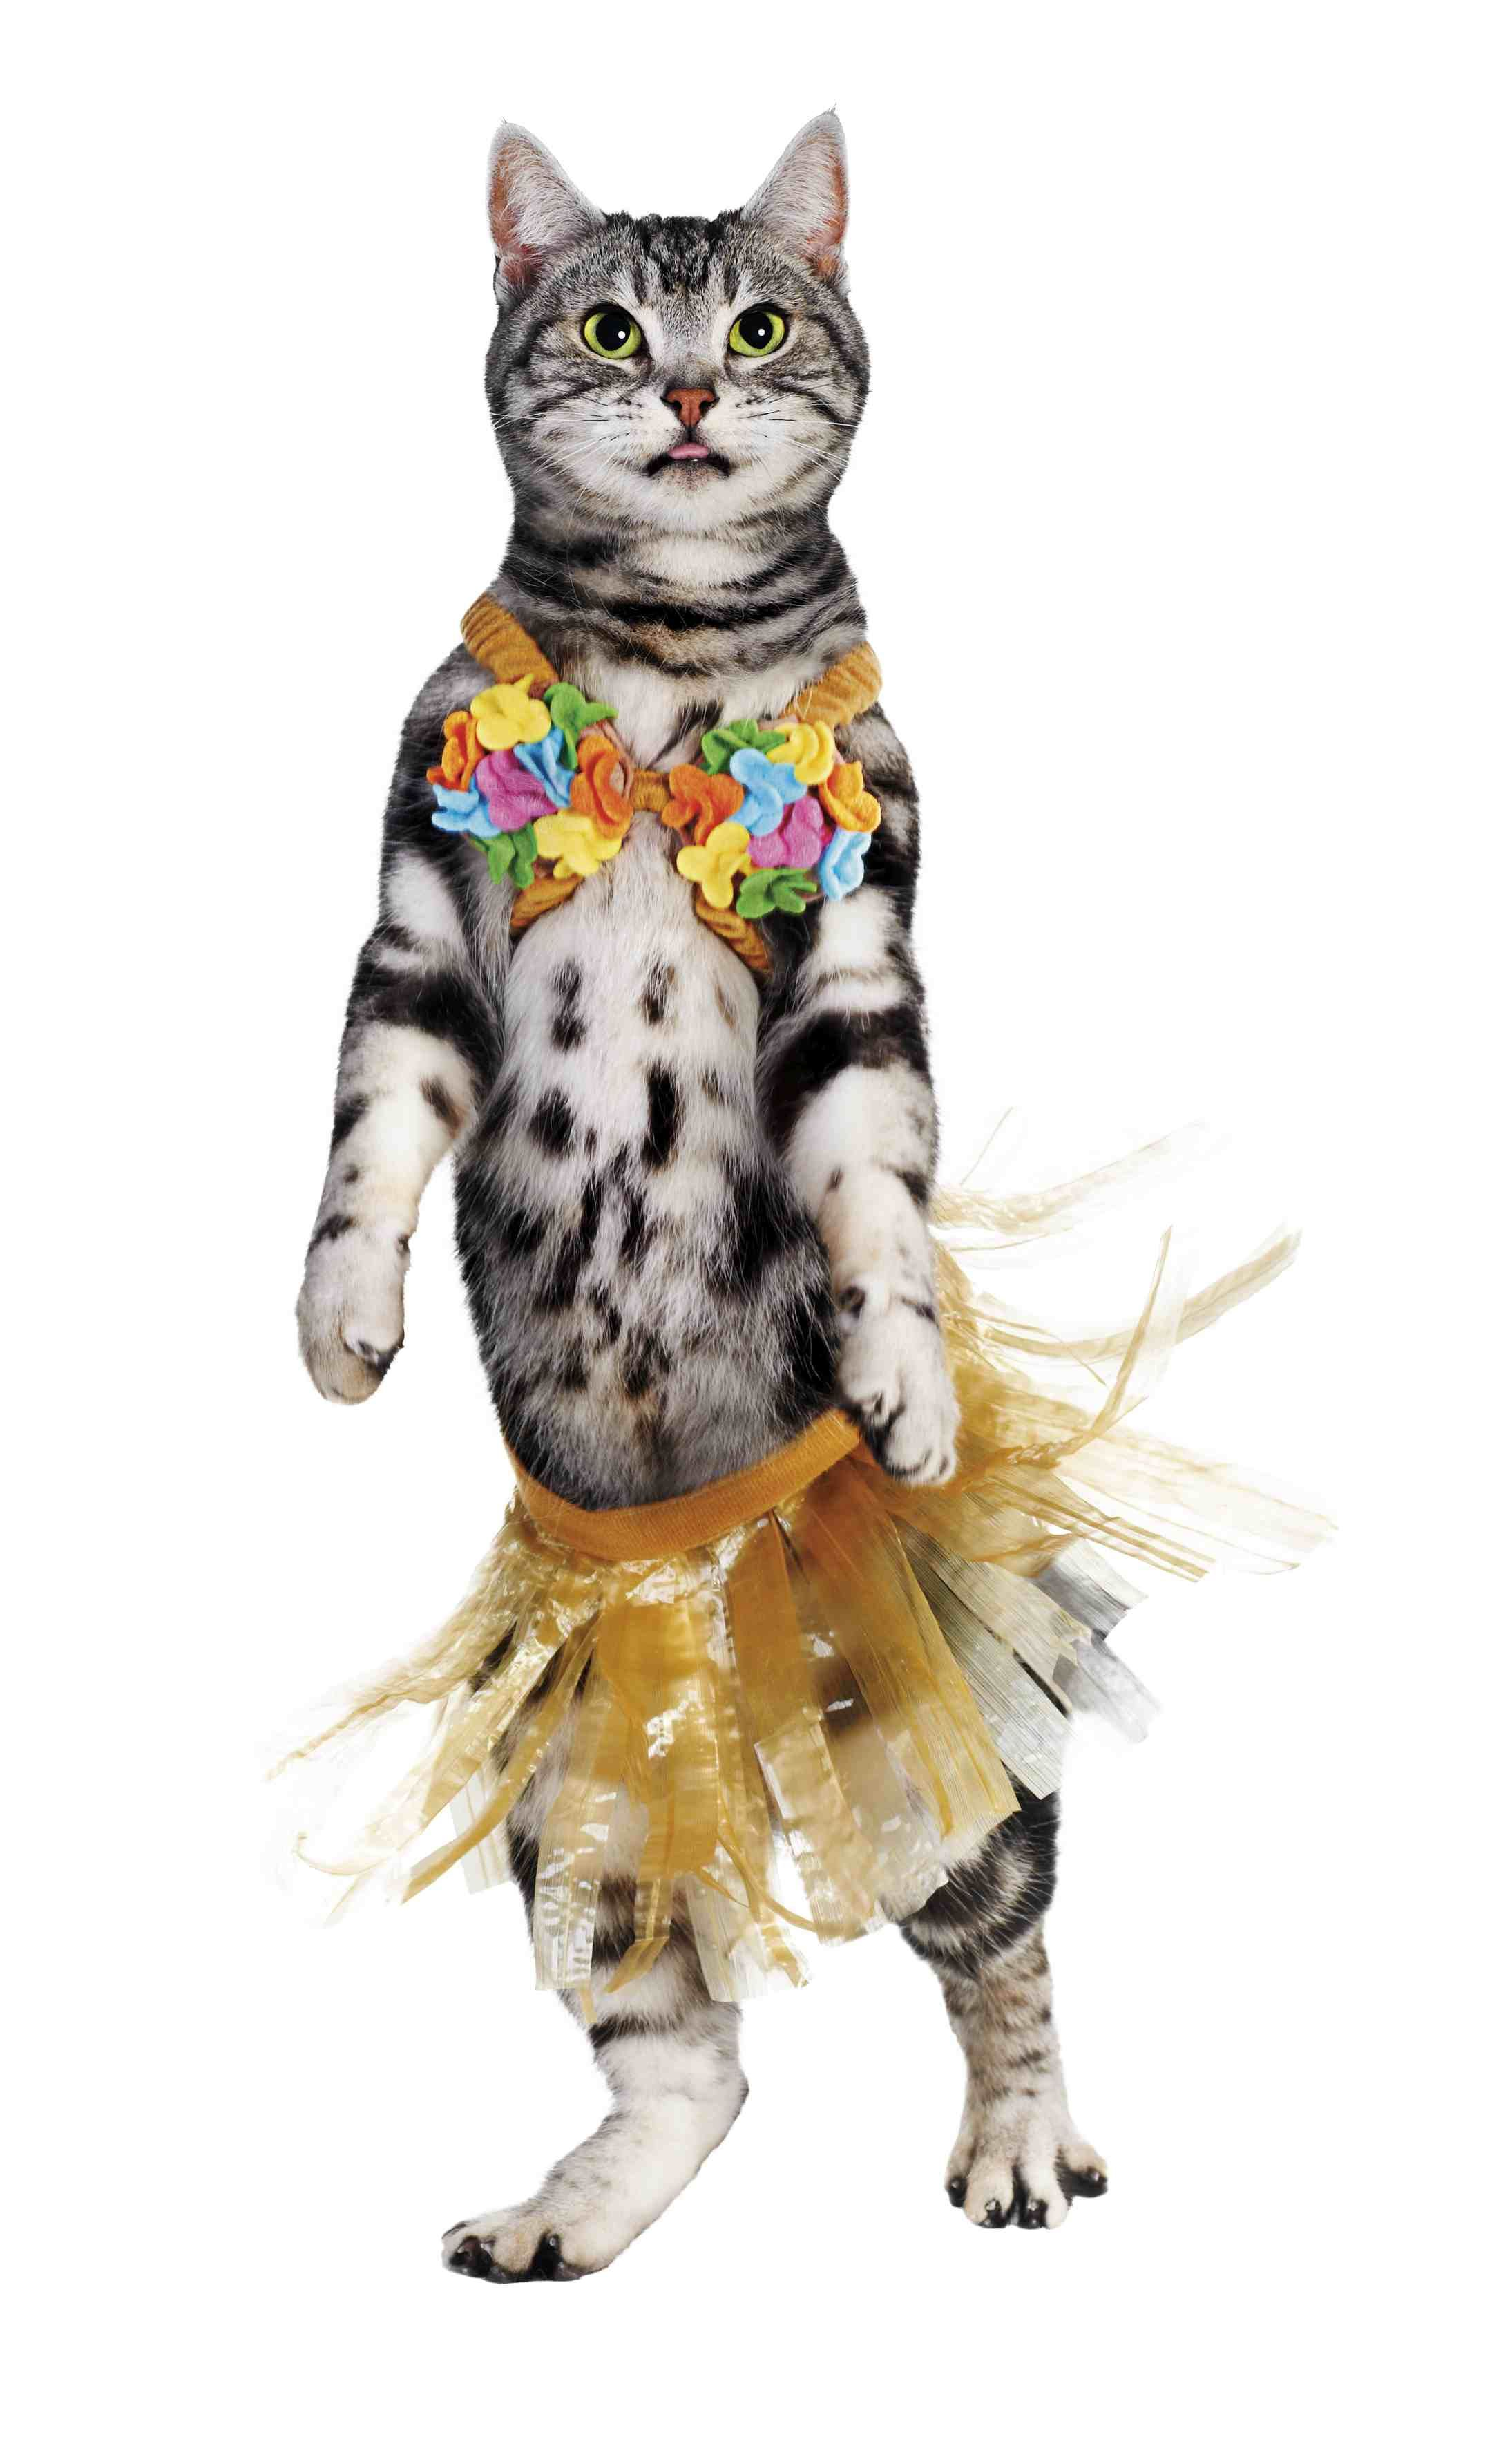 Hula cat, one of Petco's top 10 Halloween costumes for